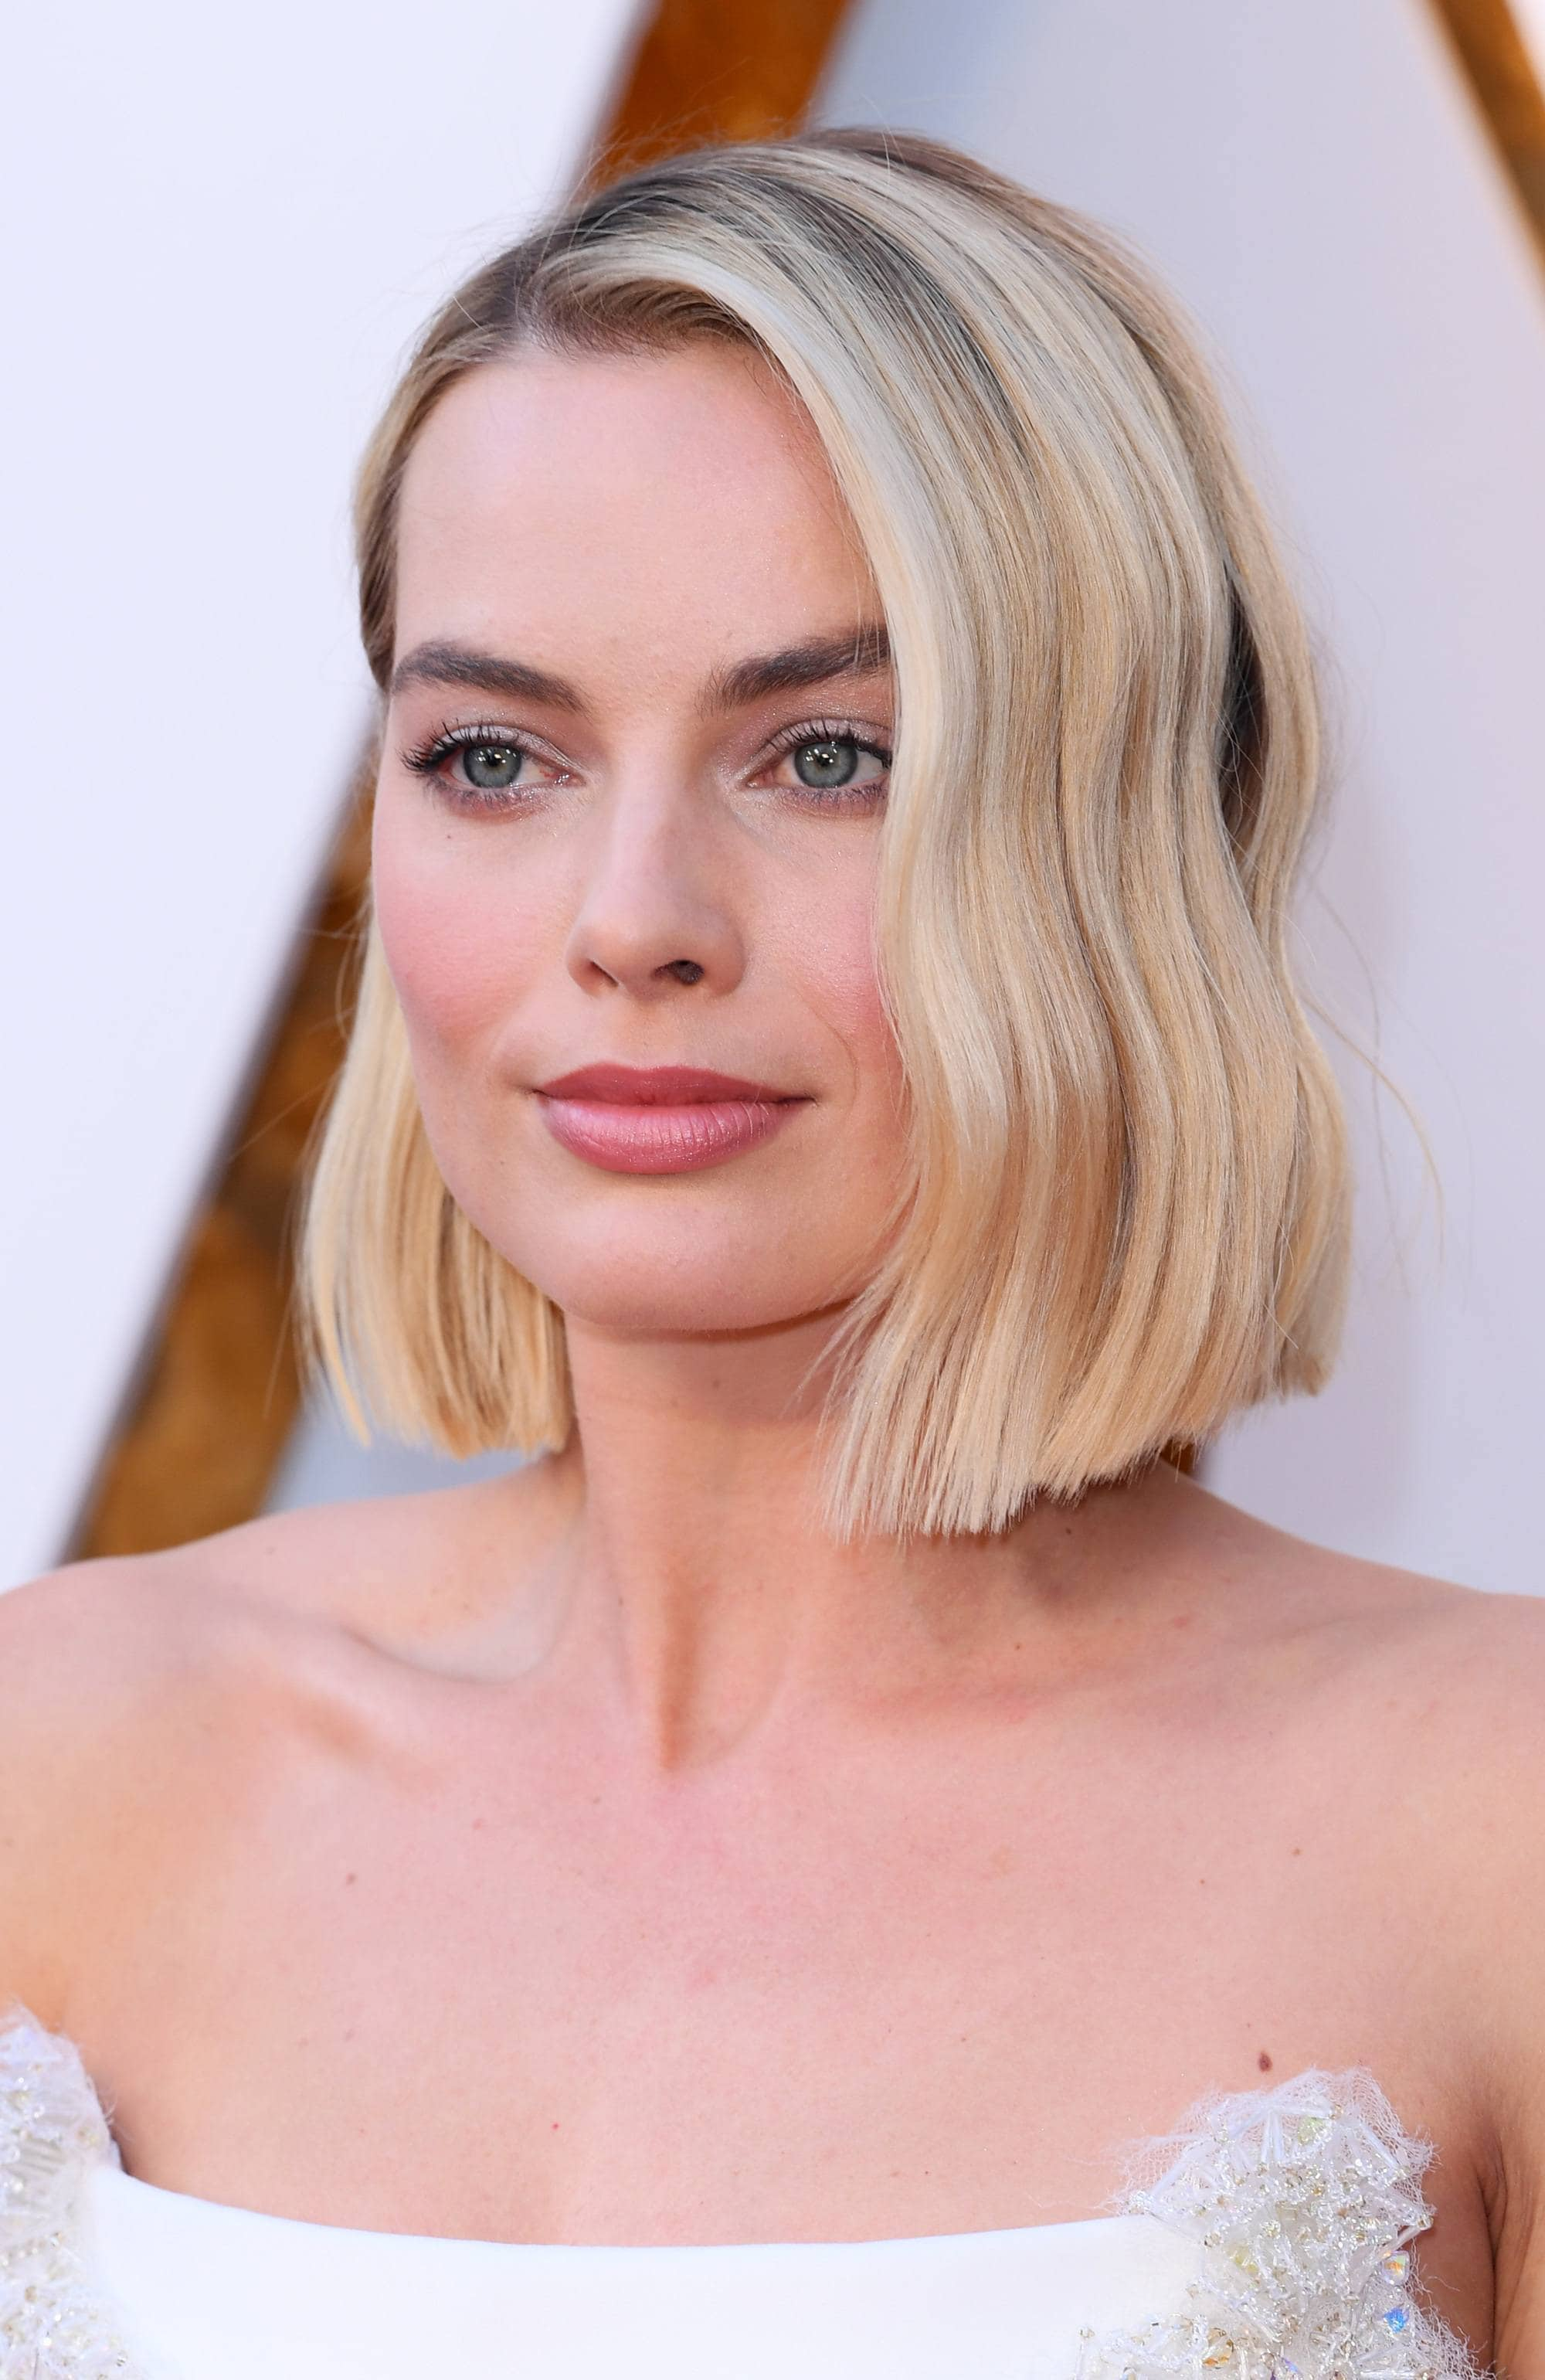 margot robbie wears popular short hairstyle blunt wavy blonde bob at oscars 2018 with strapless white dress